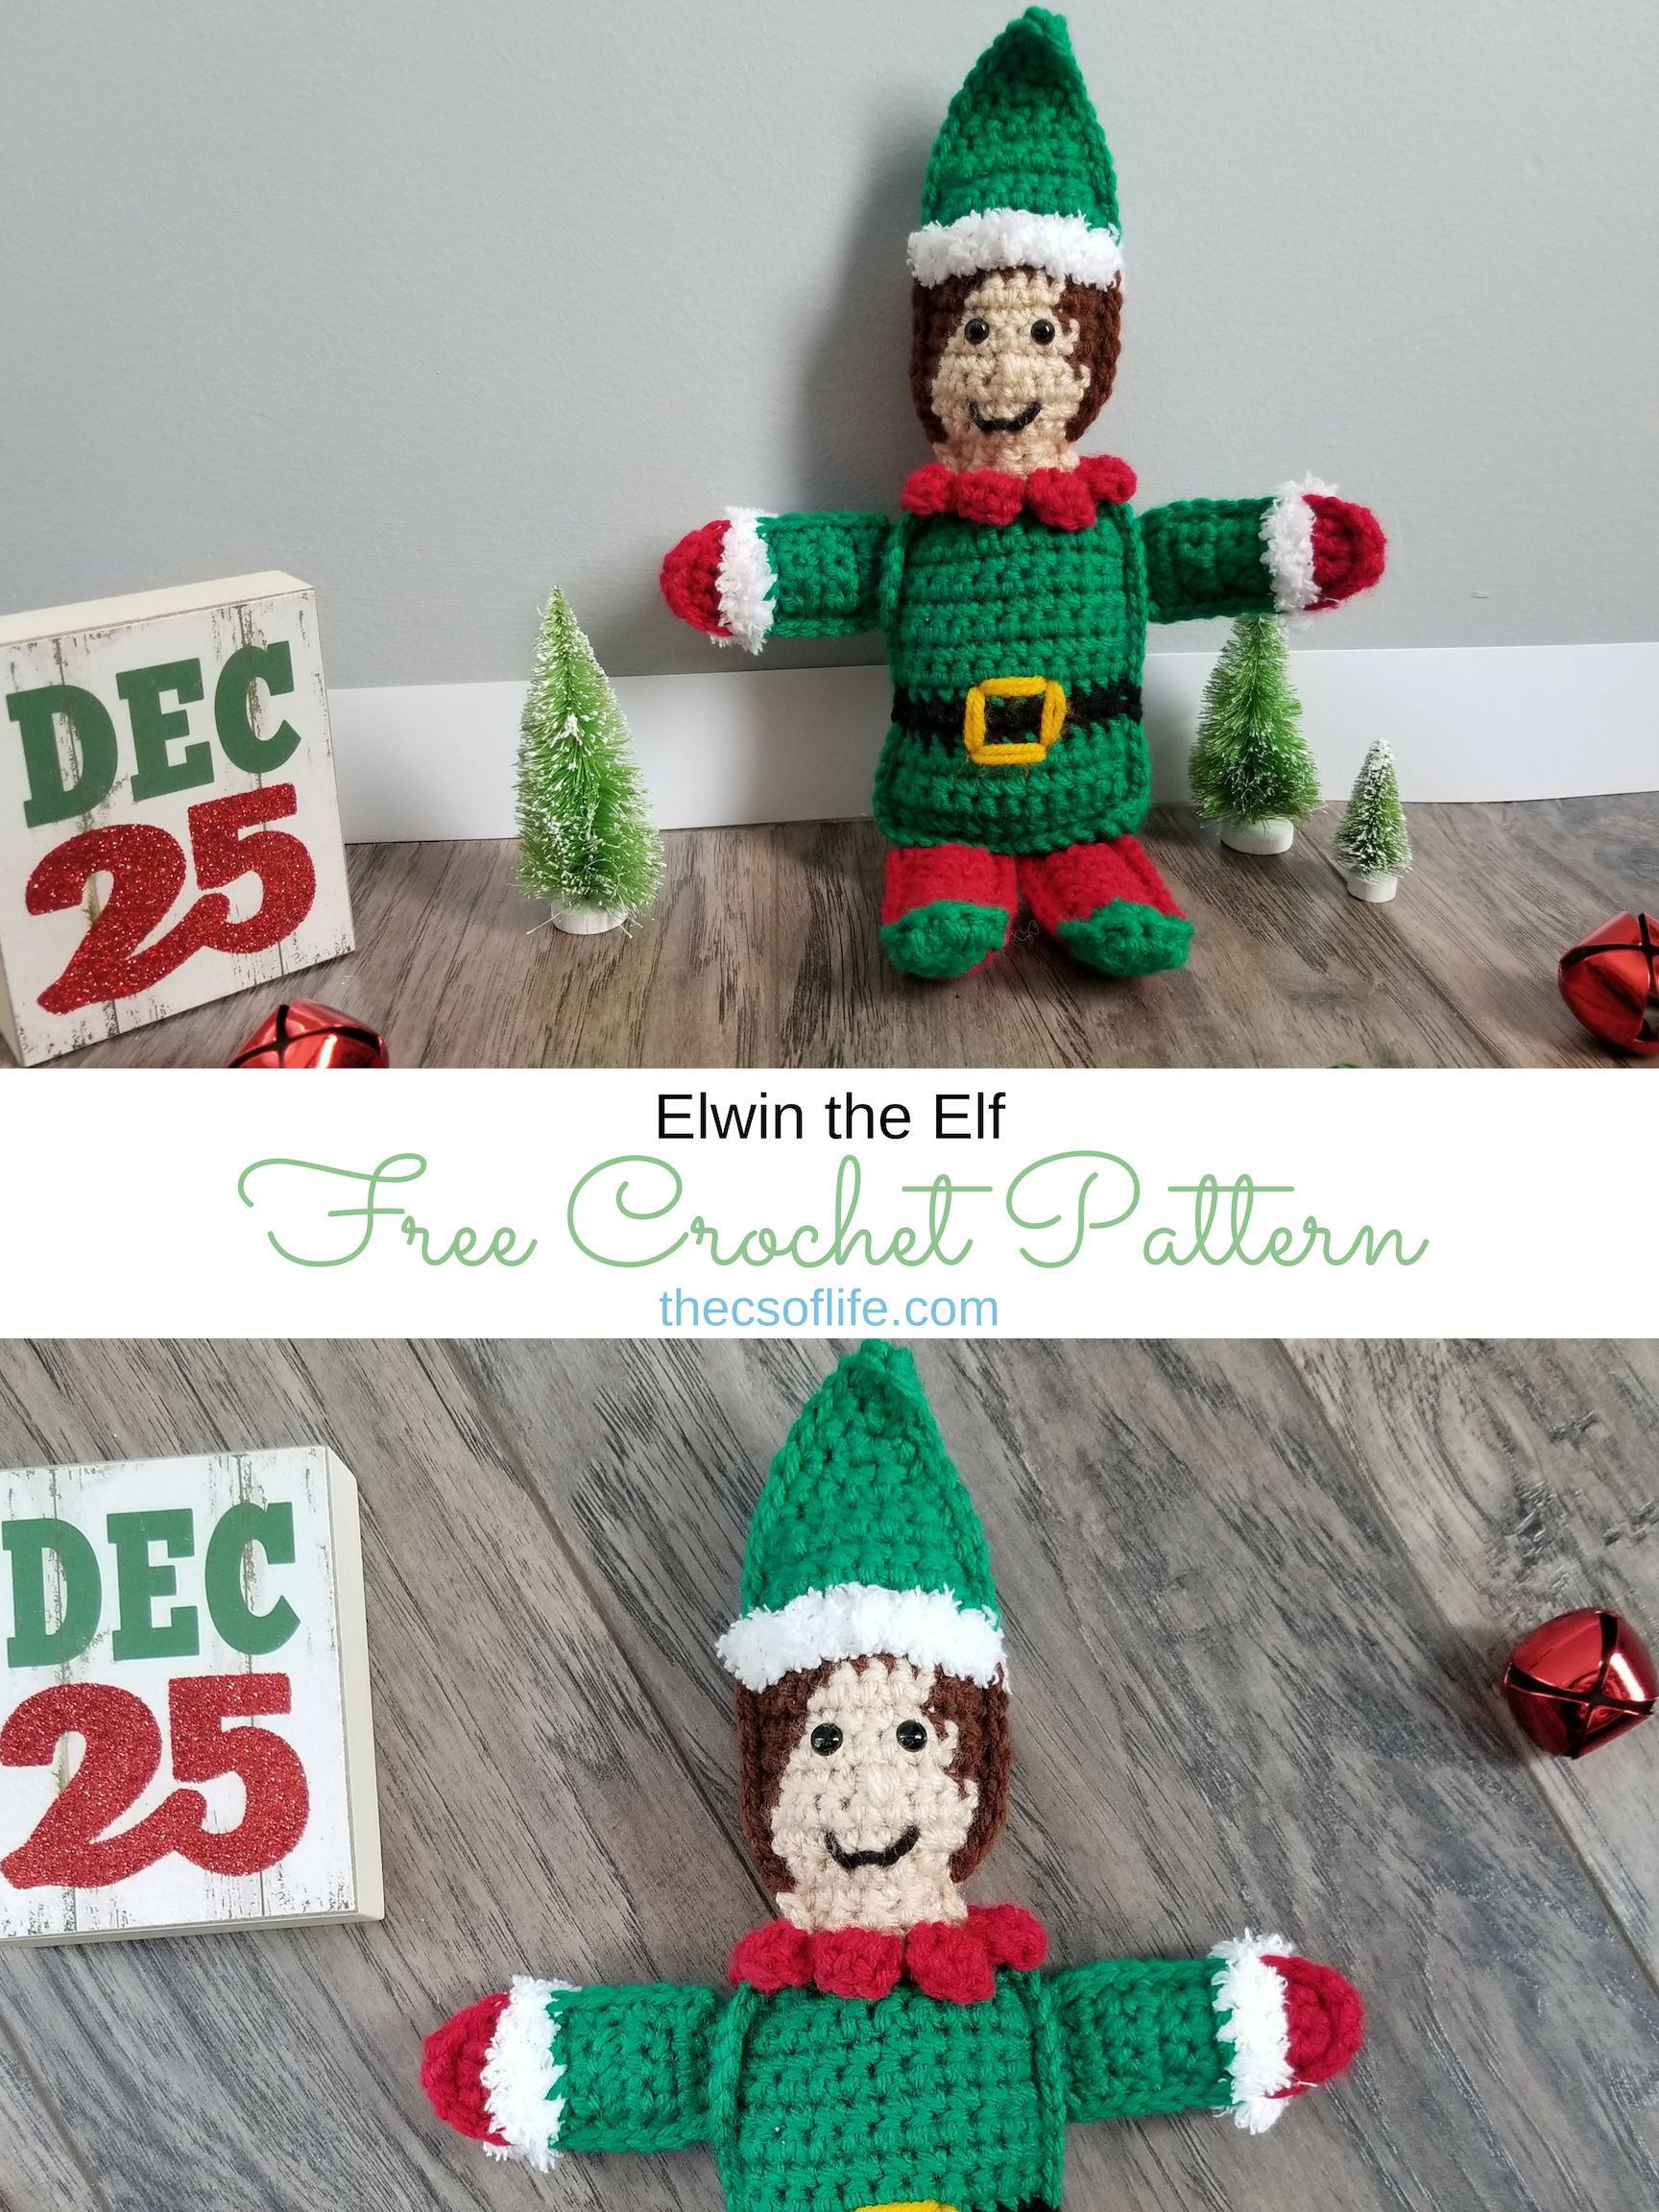 Elwin the Elf - Free Crochet Pattern